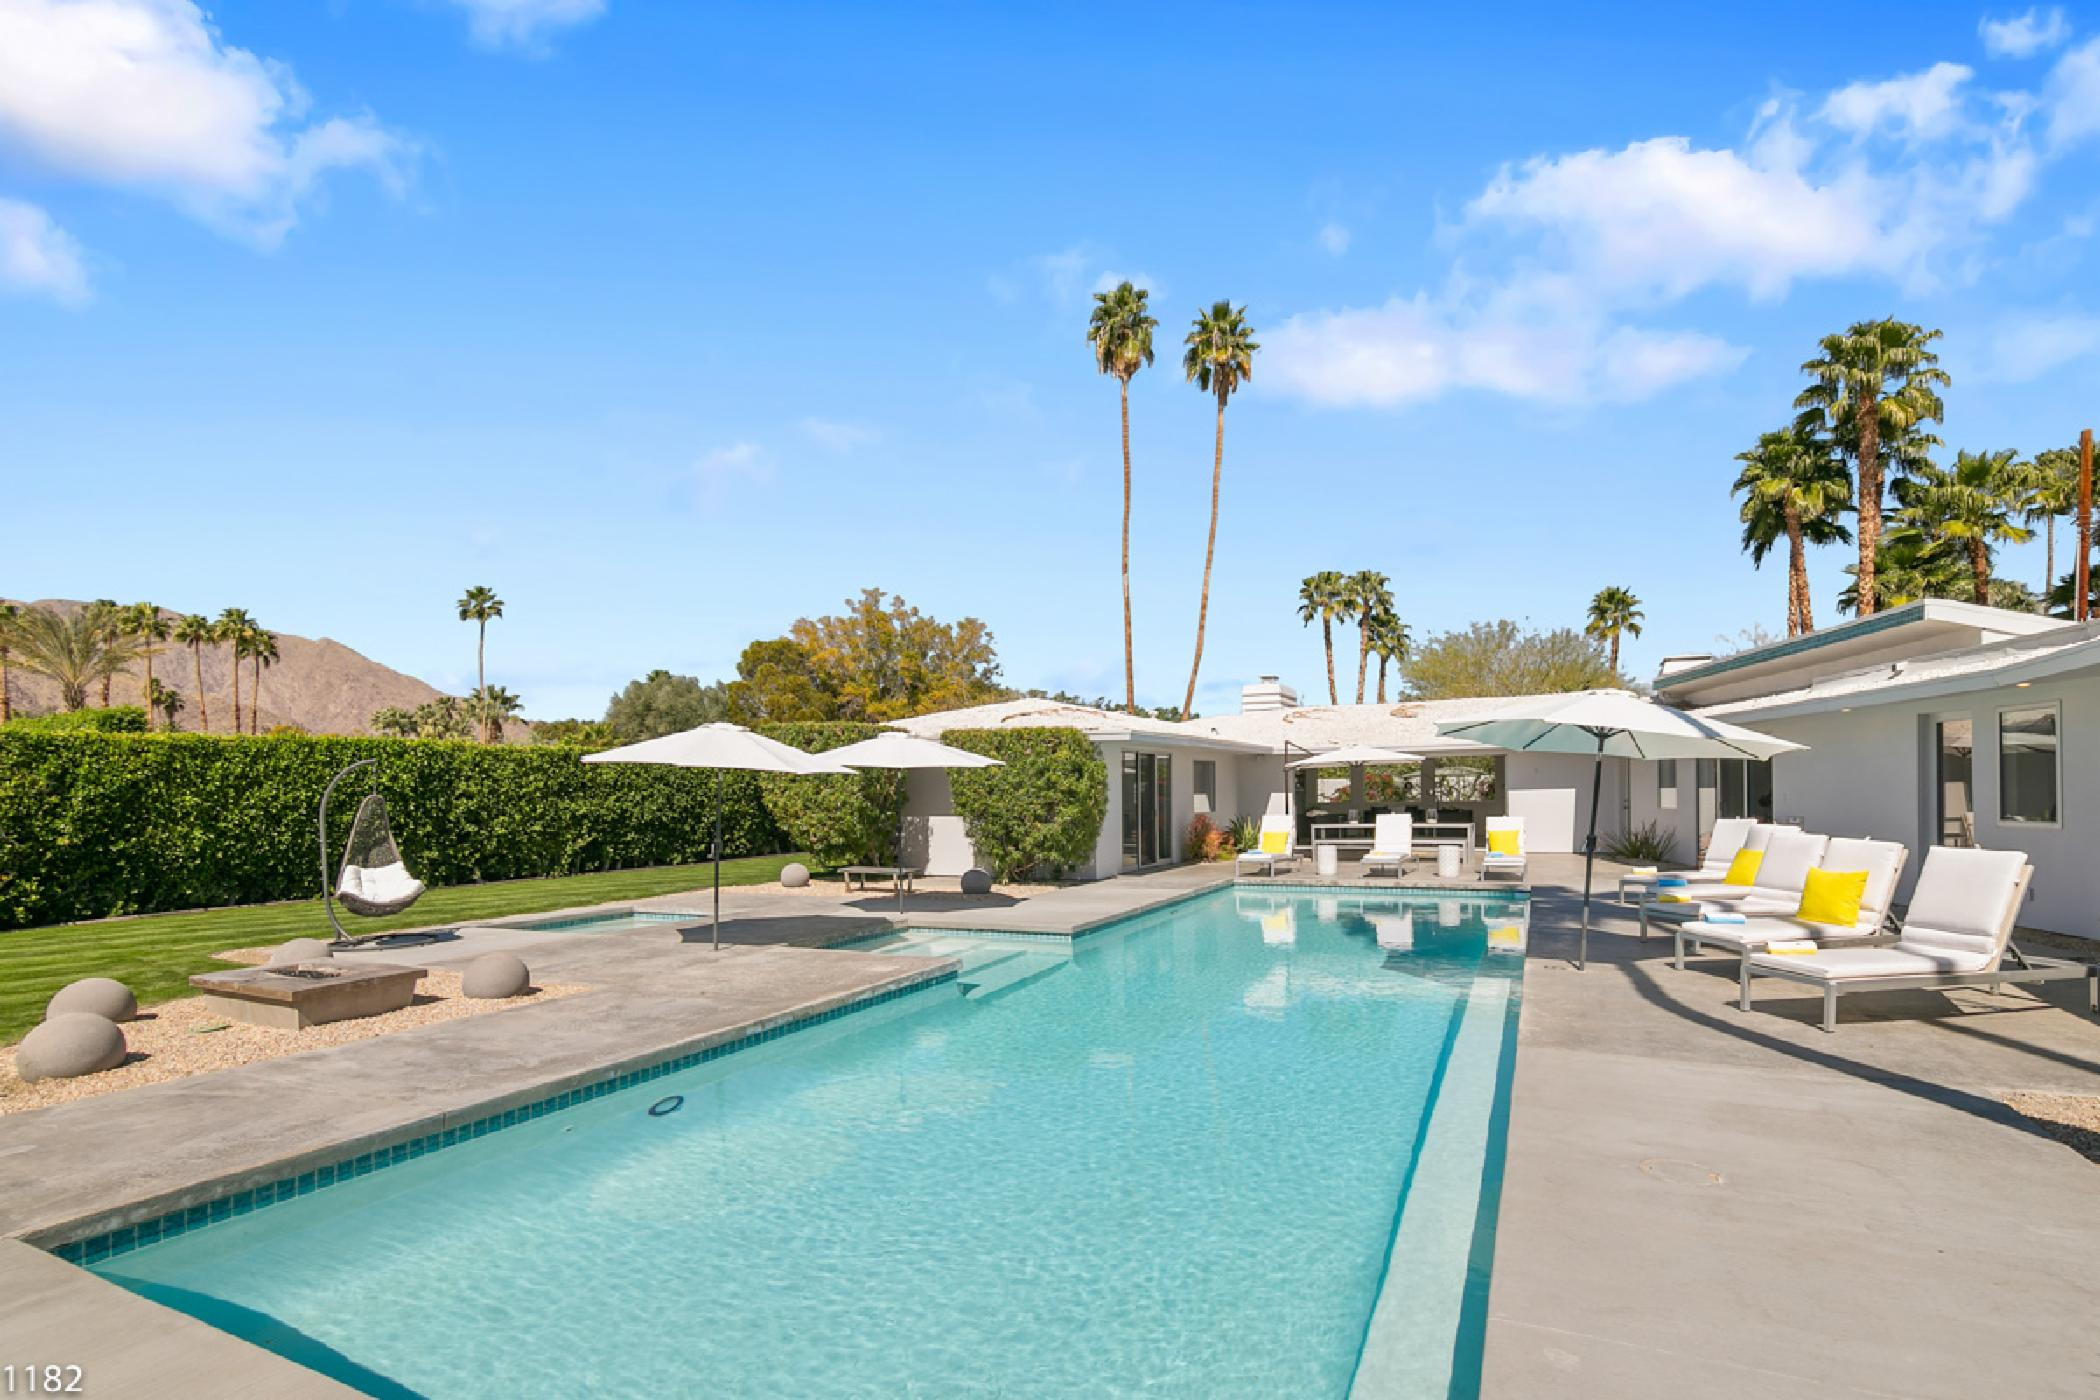 Jaw Dropping Villa with a Private Pool in the Movie Colony.